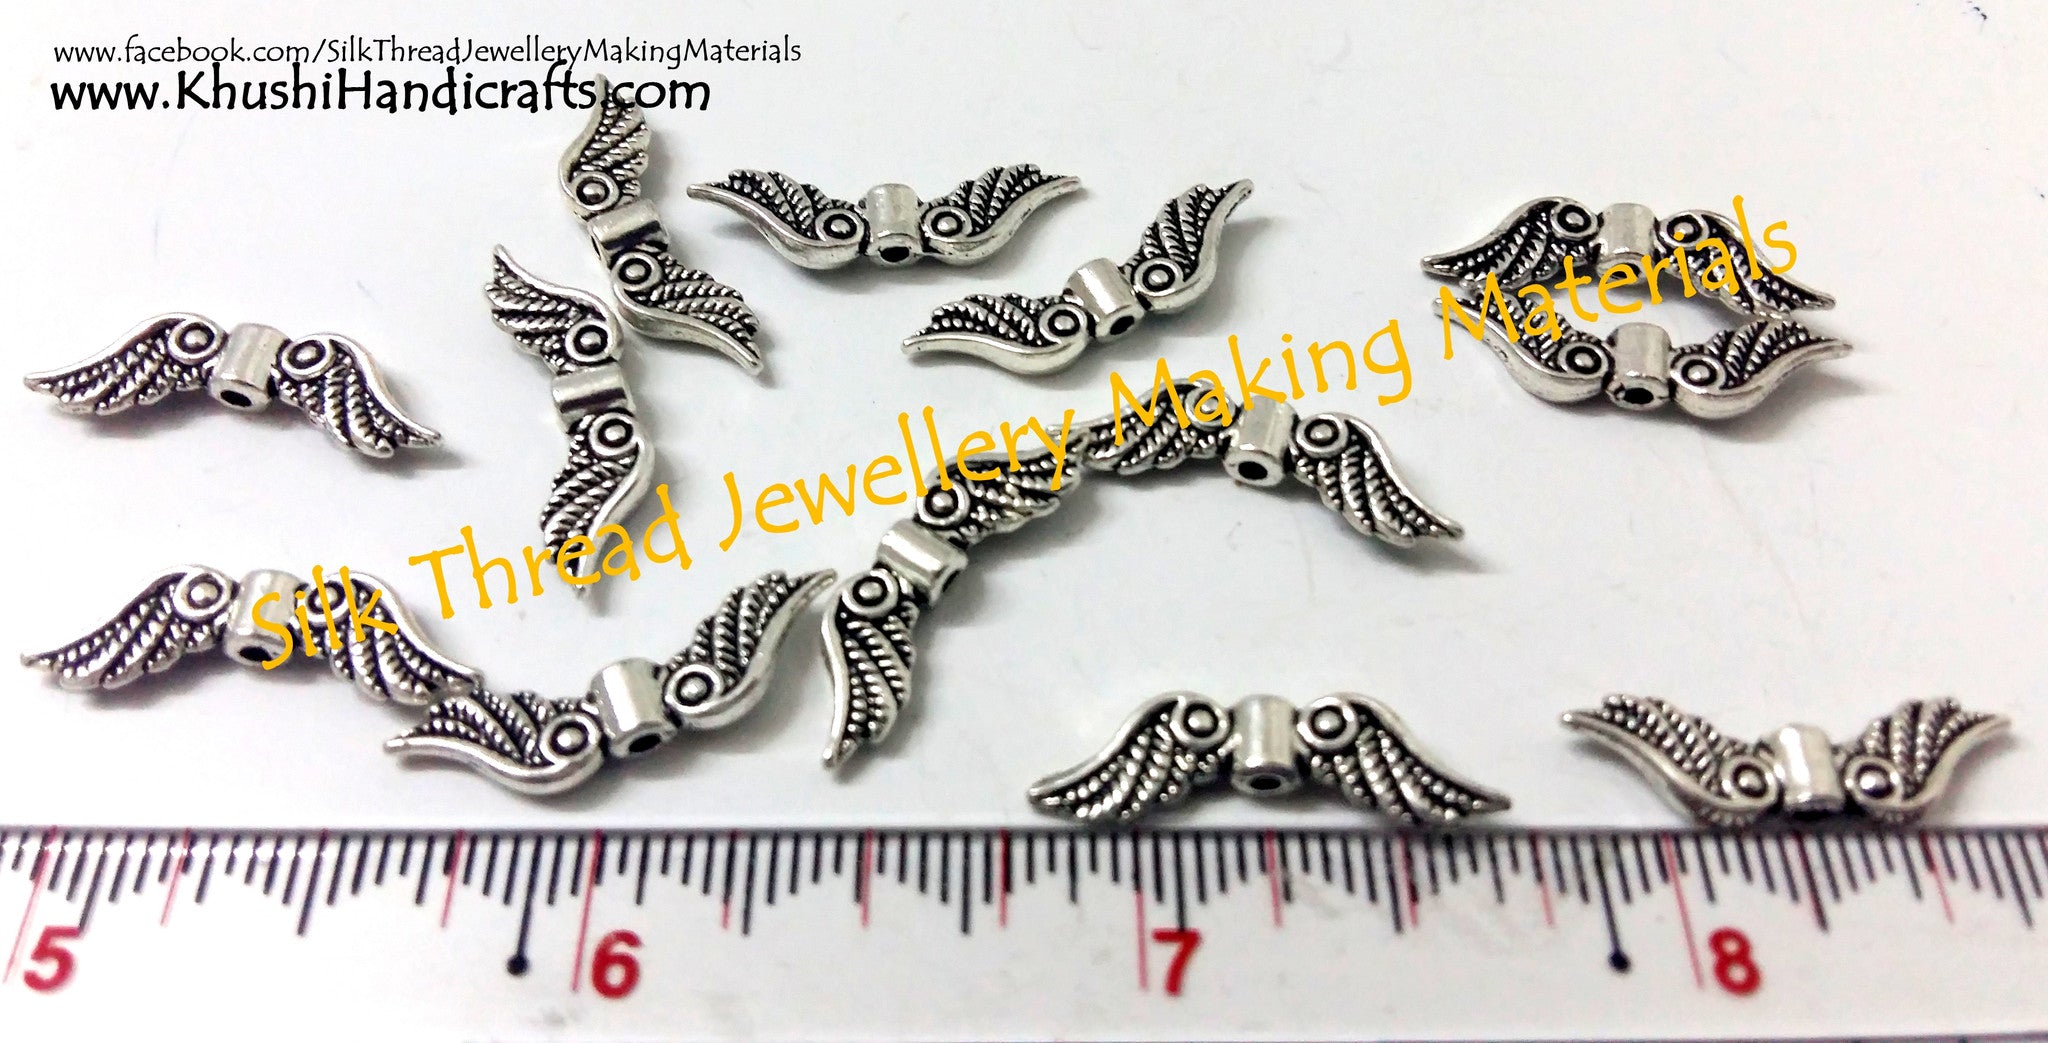 Antique silver Angel wings charms.Sold per piece! - Khushi Handmade Jewellery